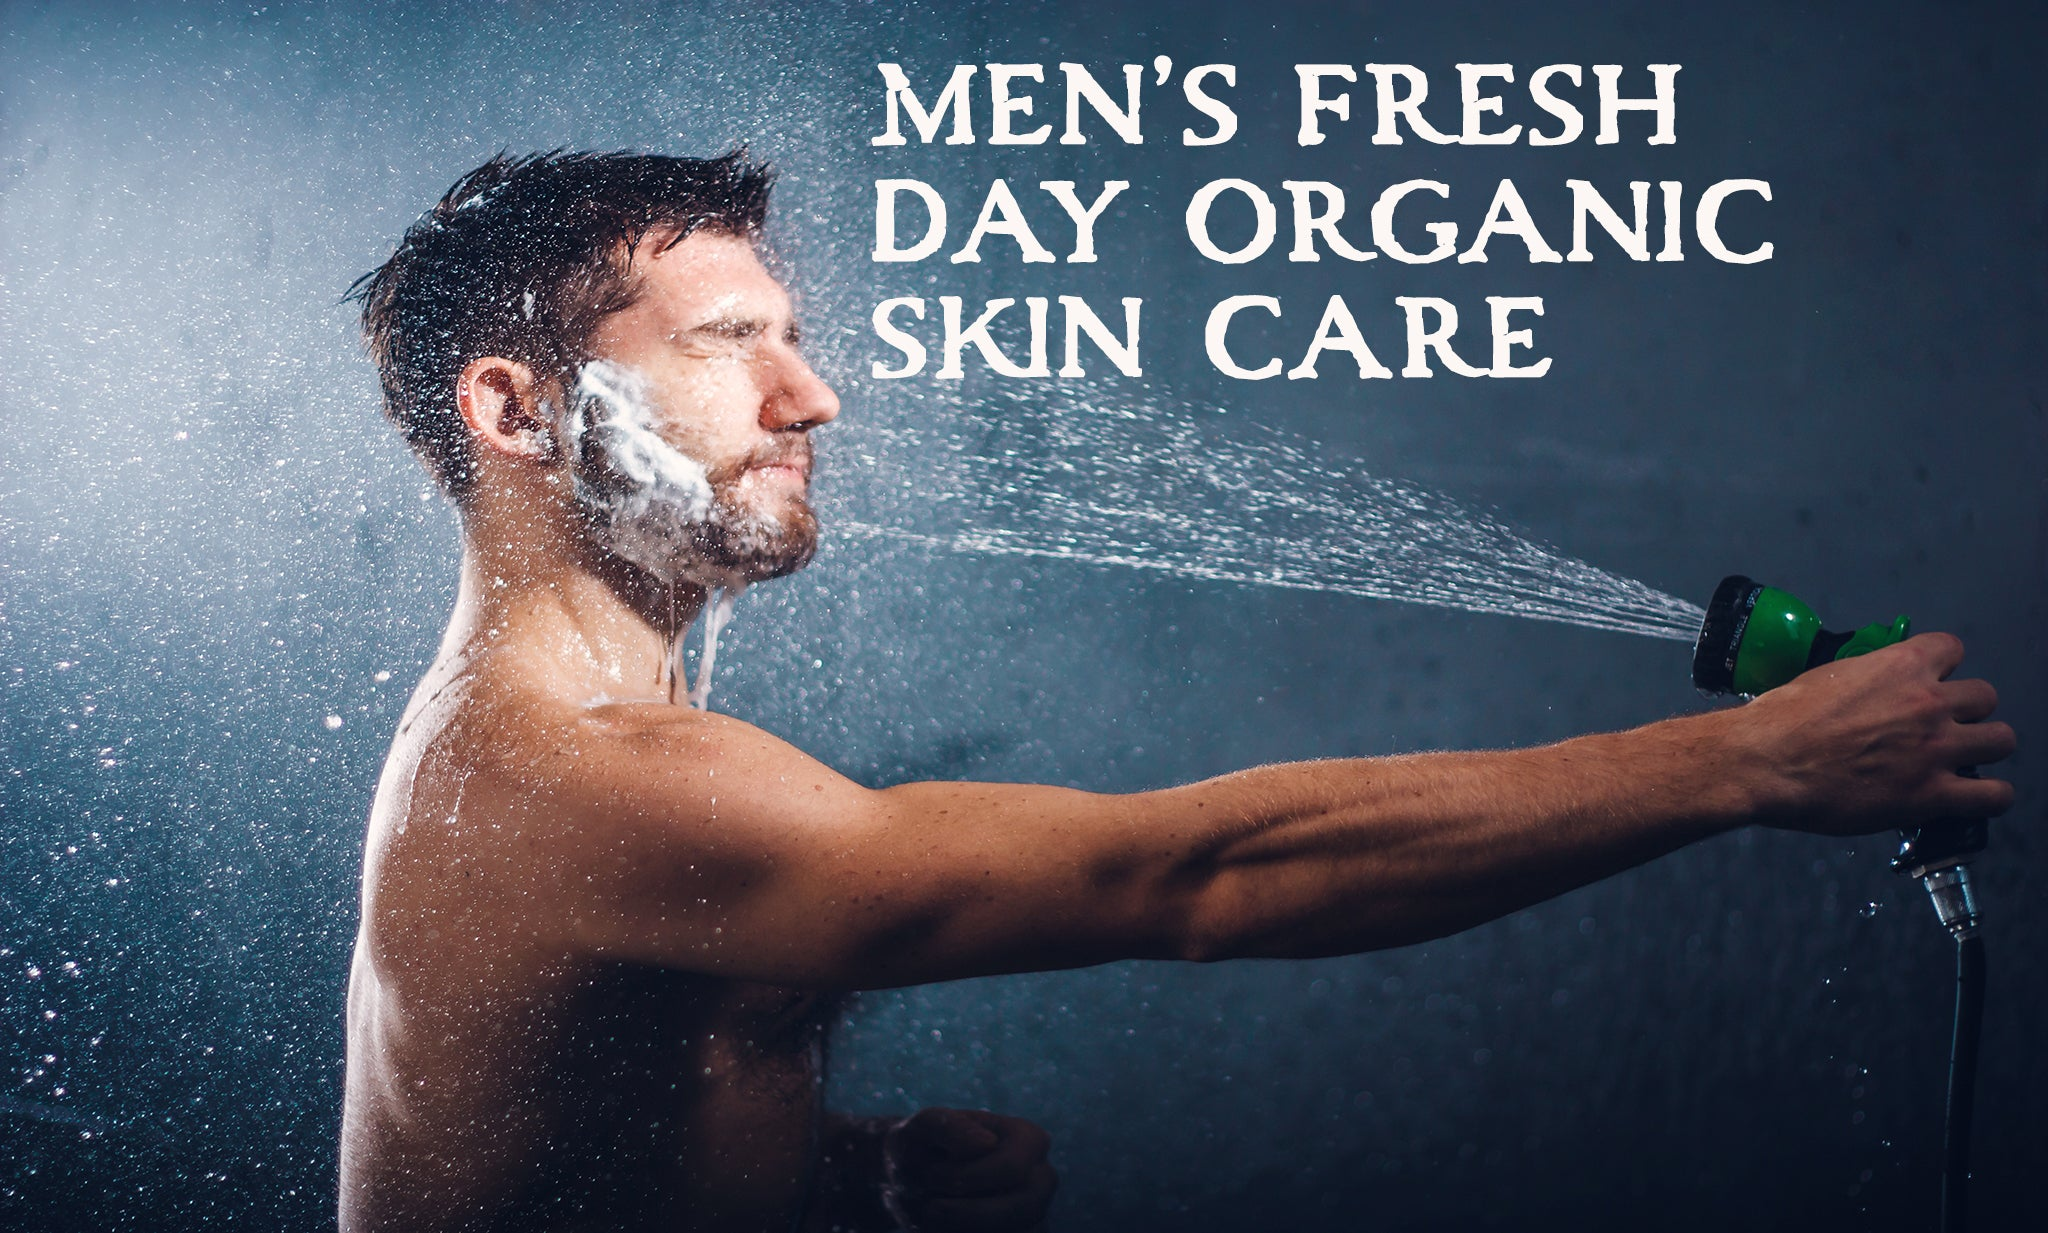 men's organic skin care natural products